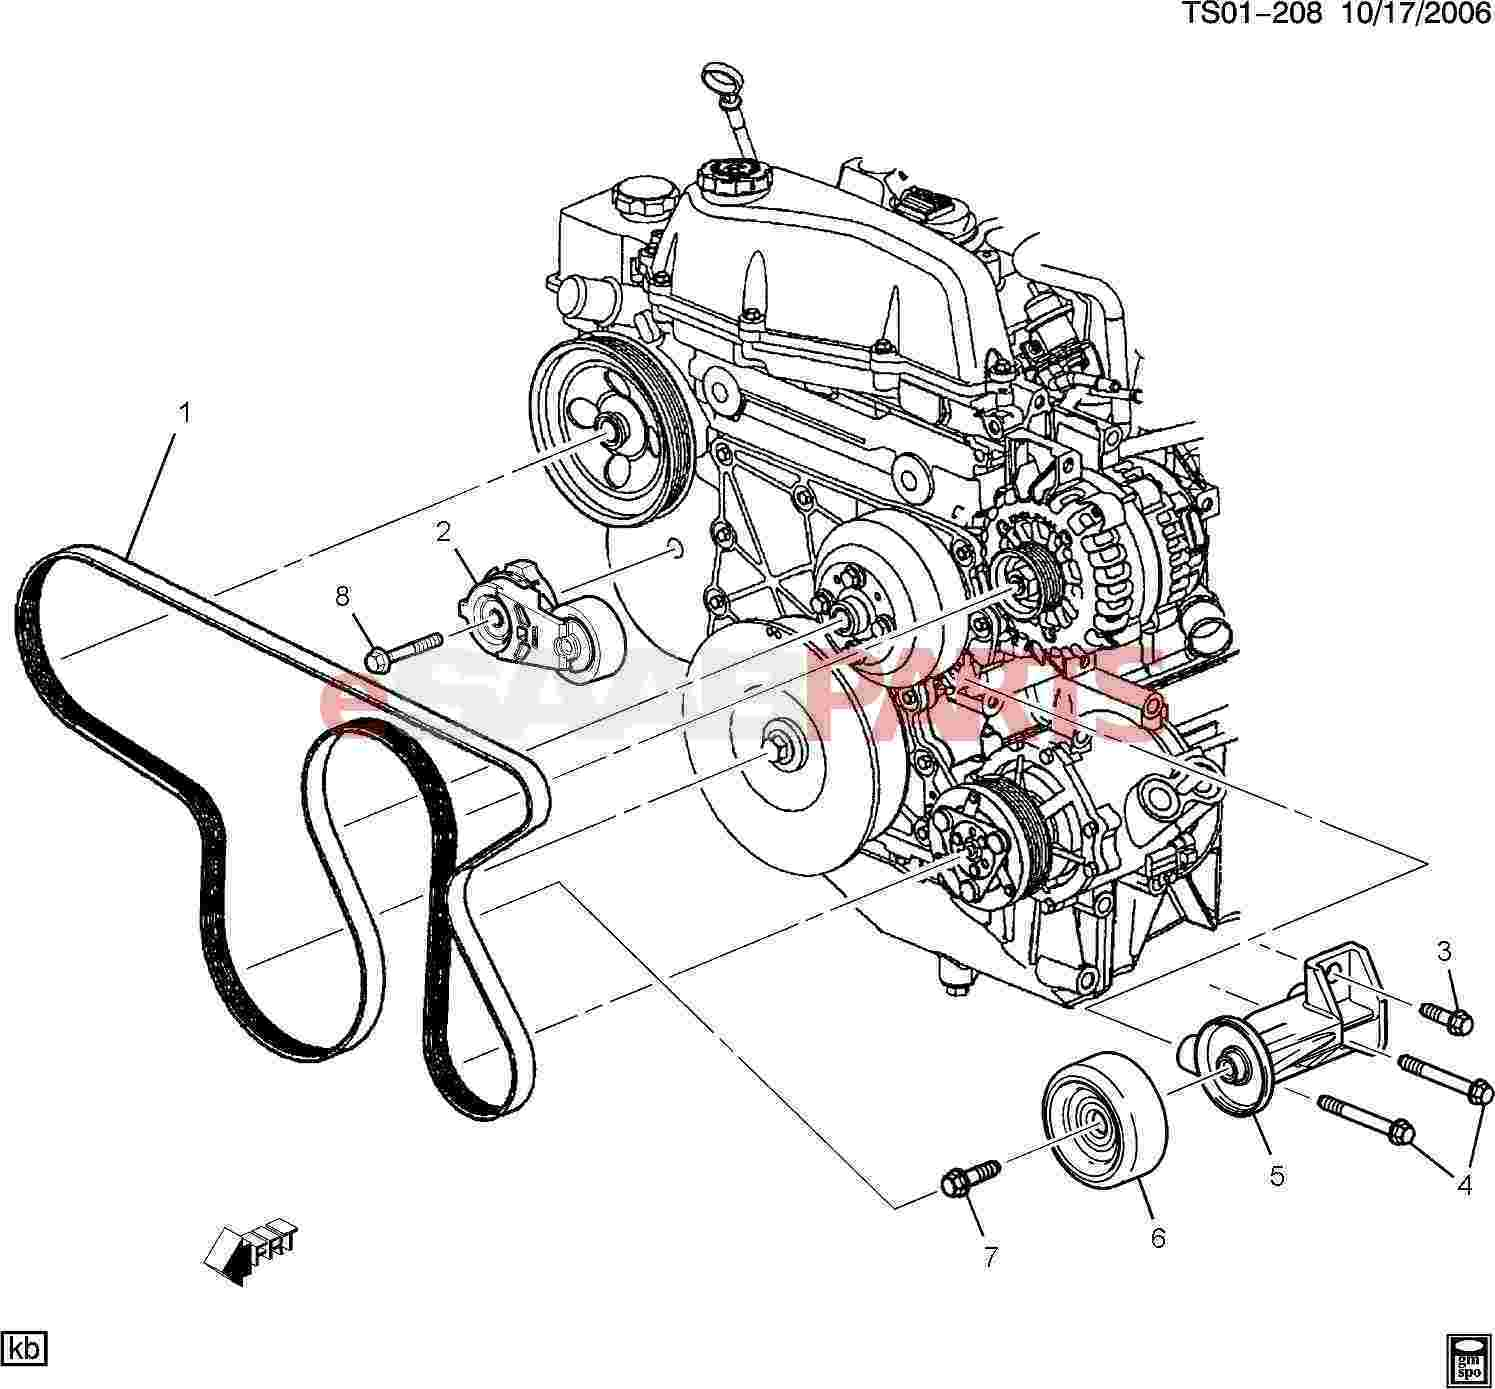 hight resolution of chevy duramax belt routing diagram besides 2002 chevrolet silverado diagram moreover 2003 chevy impala engine diagram besides 2006 chevy